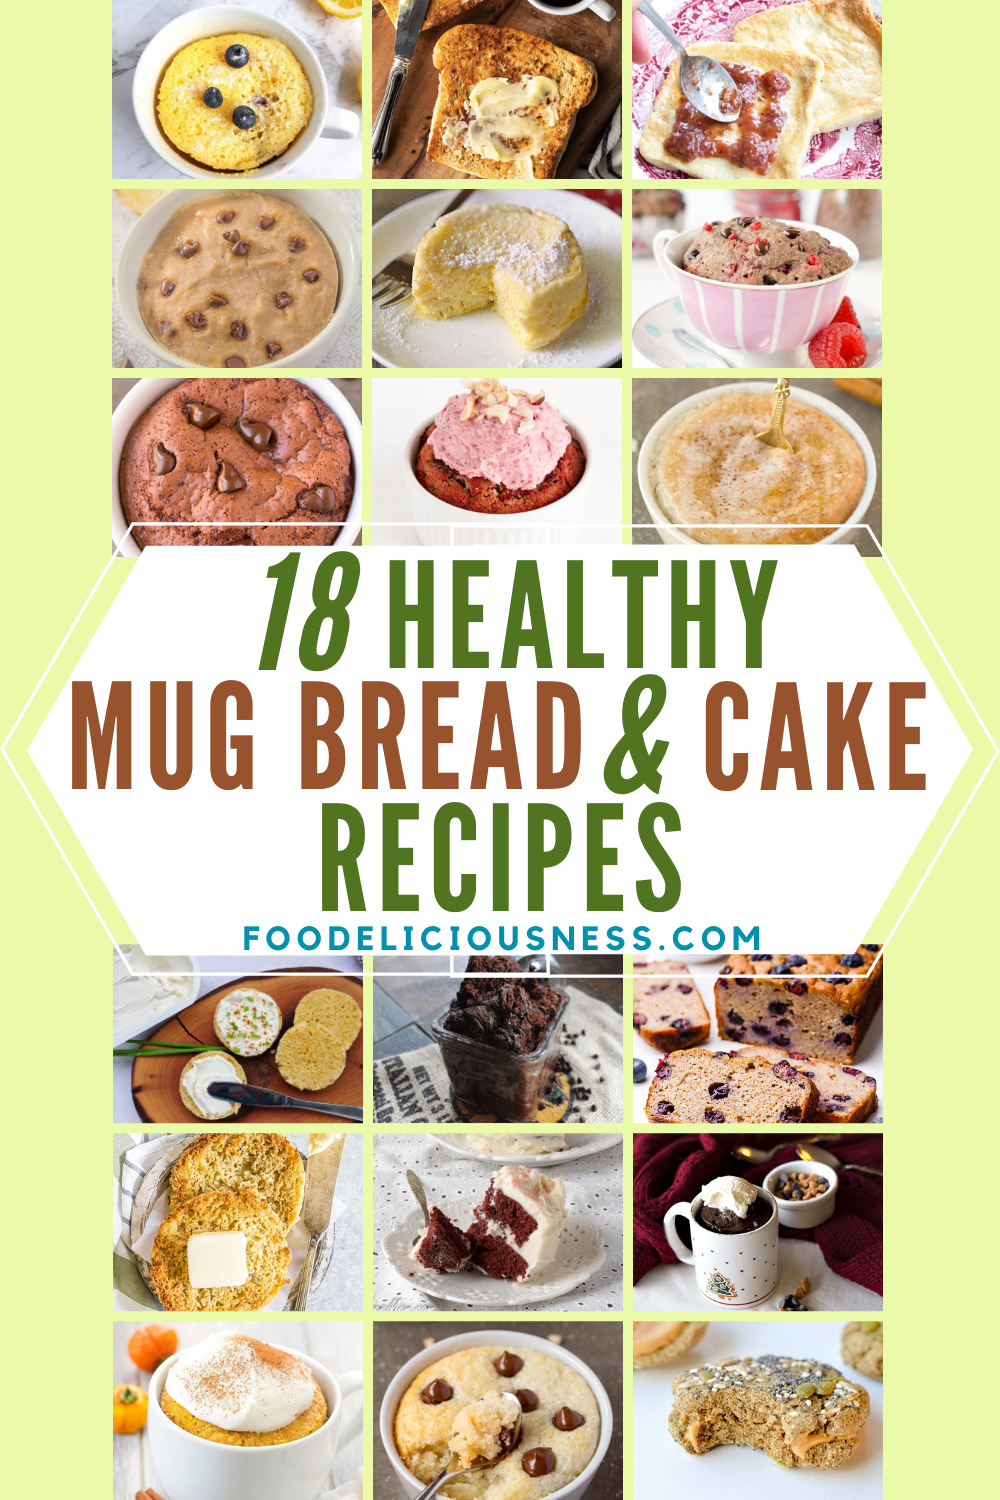 Healthy Mug Cake Recipes for Low-Carb Keto, Paleo, and Vegan are what a lot of people who are always on the go, and at the same time, on their respective diets, would love to learn. They are easy, healthy, and delicious. You don't have to wait for 45 minutes to one hour before having them. Moreover, you will just be making enough for yourself to enjoy. #Ketomugbreads #ketomugcakes @Foodeliciousness